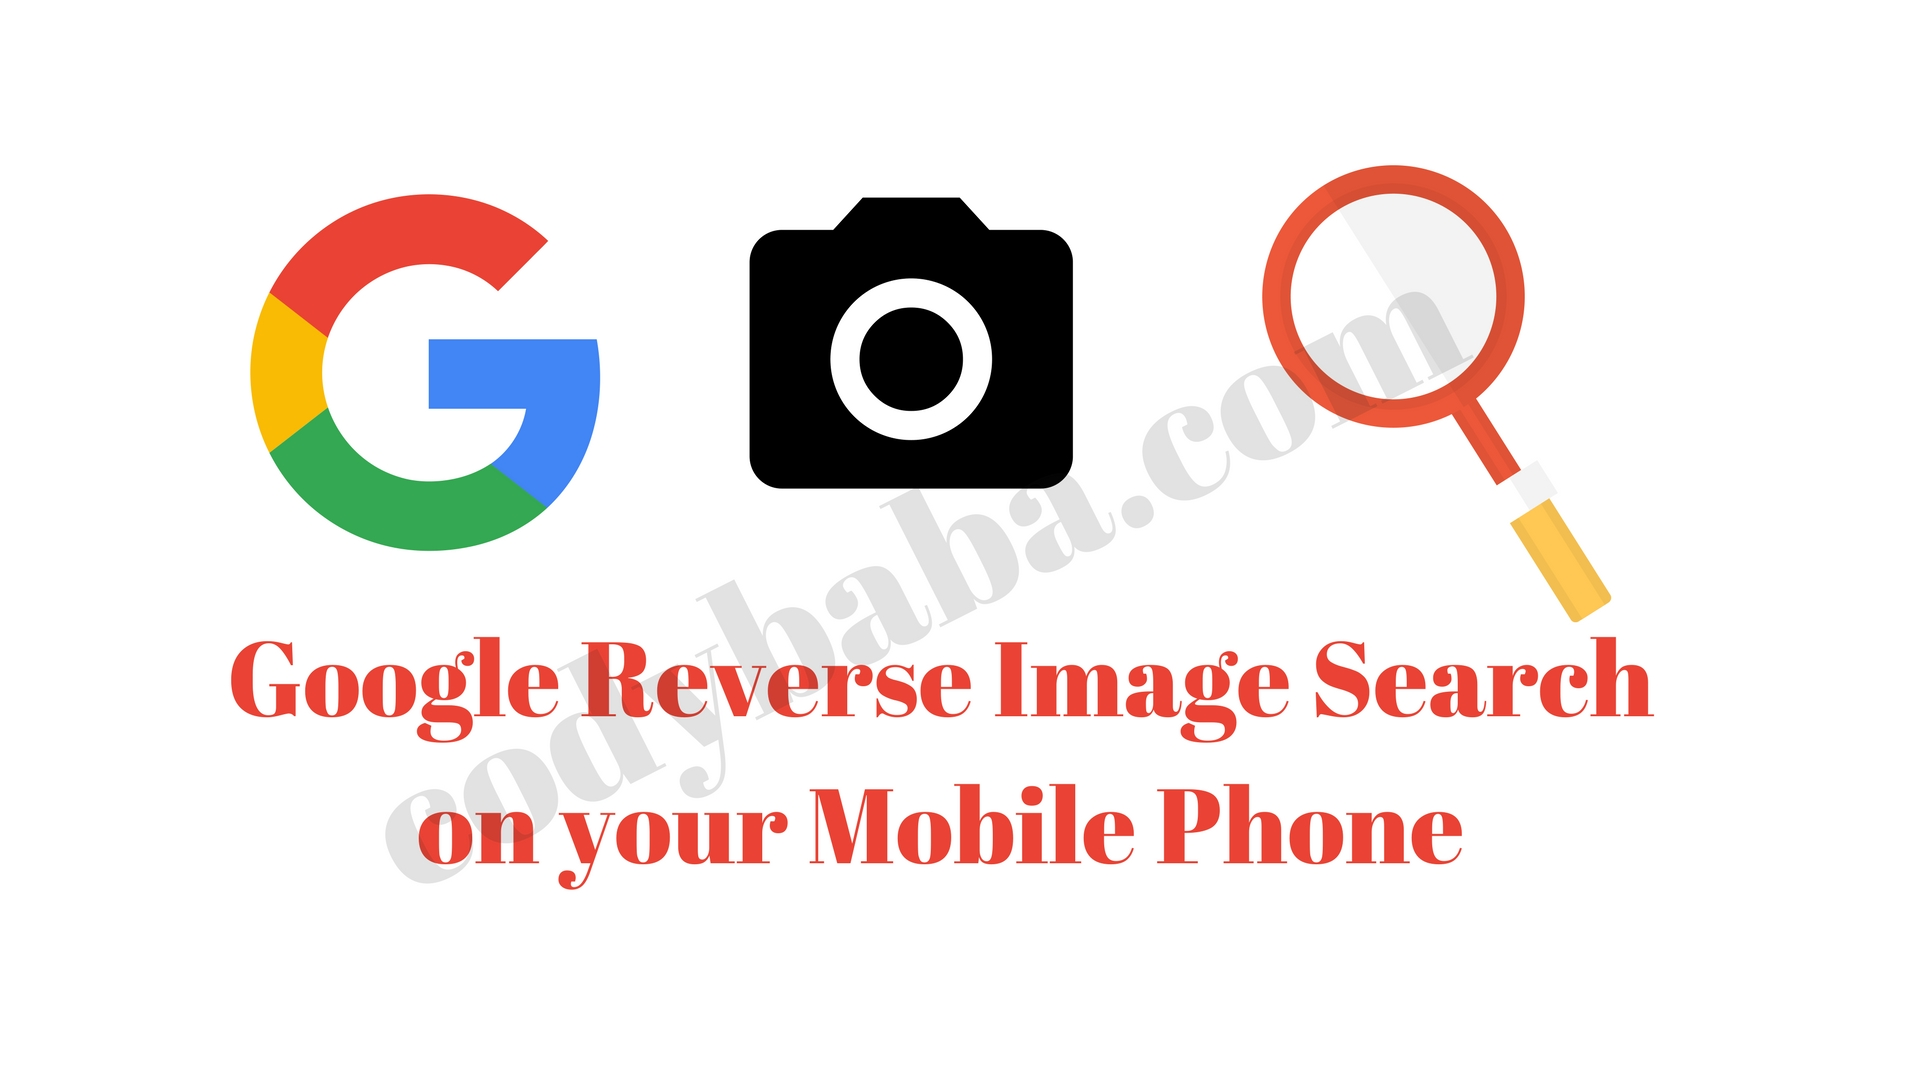 Google Reverse Image Search on your Mobile Phone